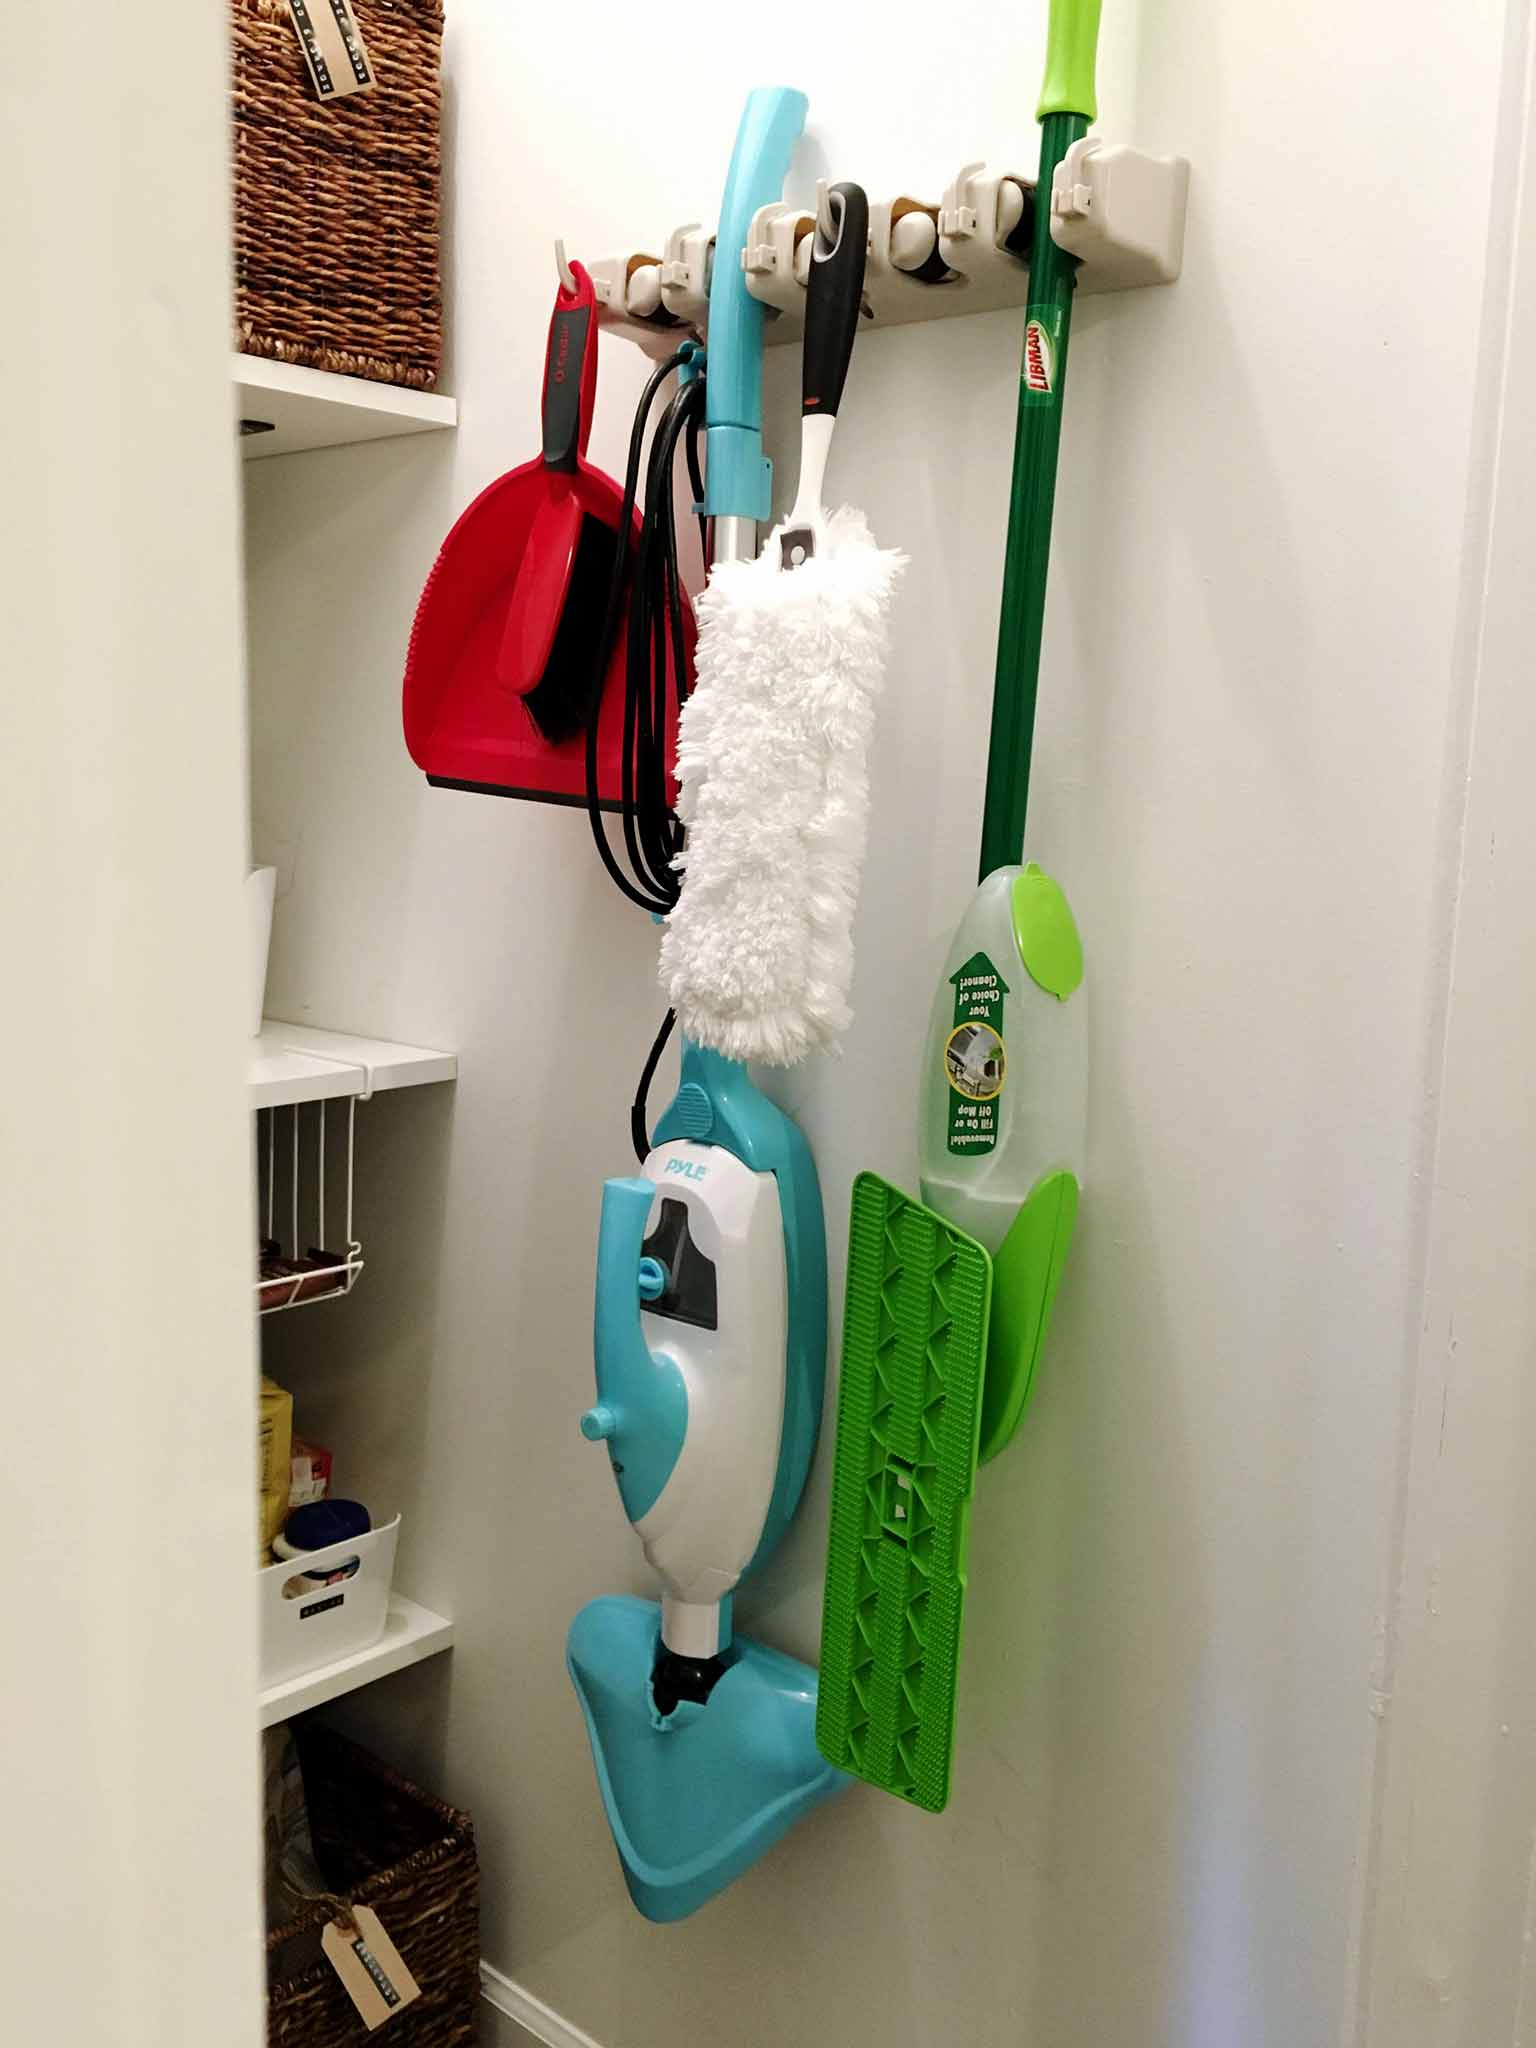 Cleaning supplies - That Homebird Life Blog